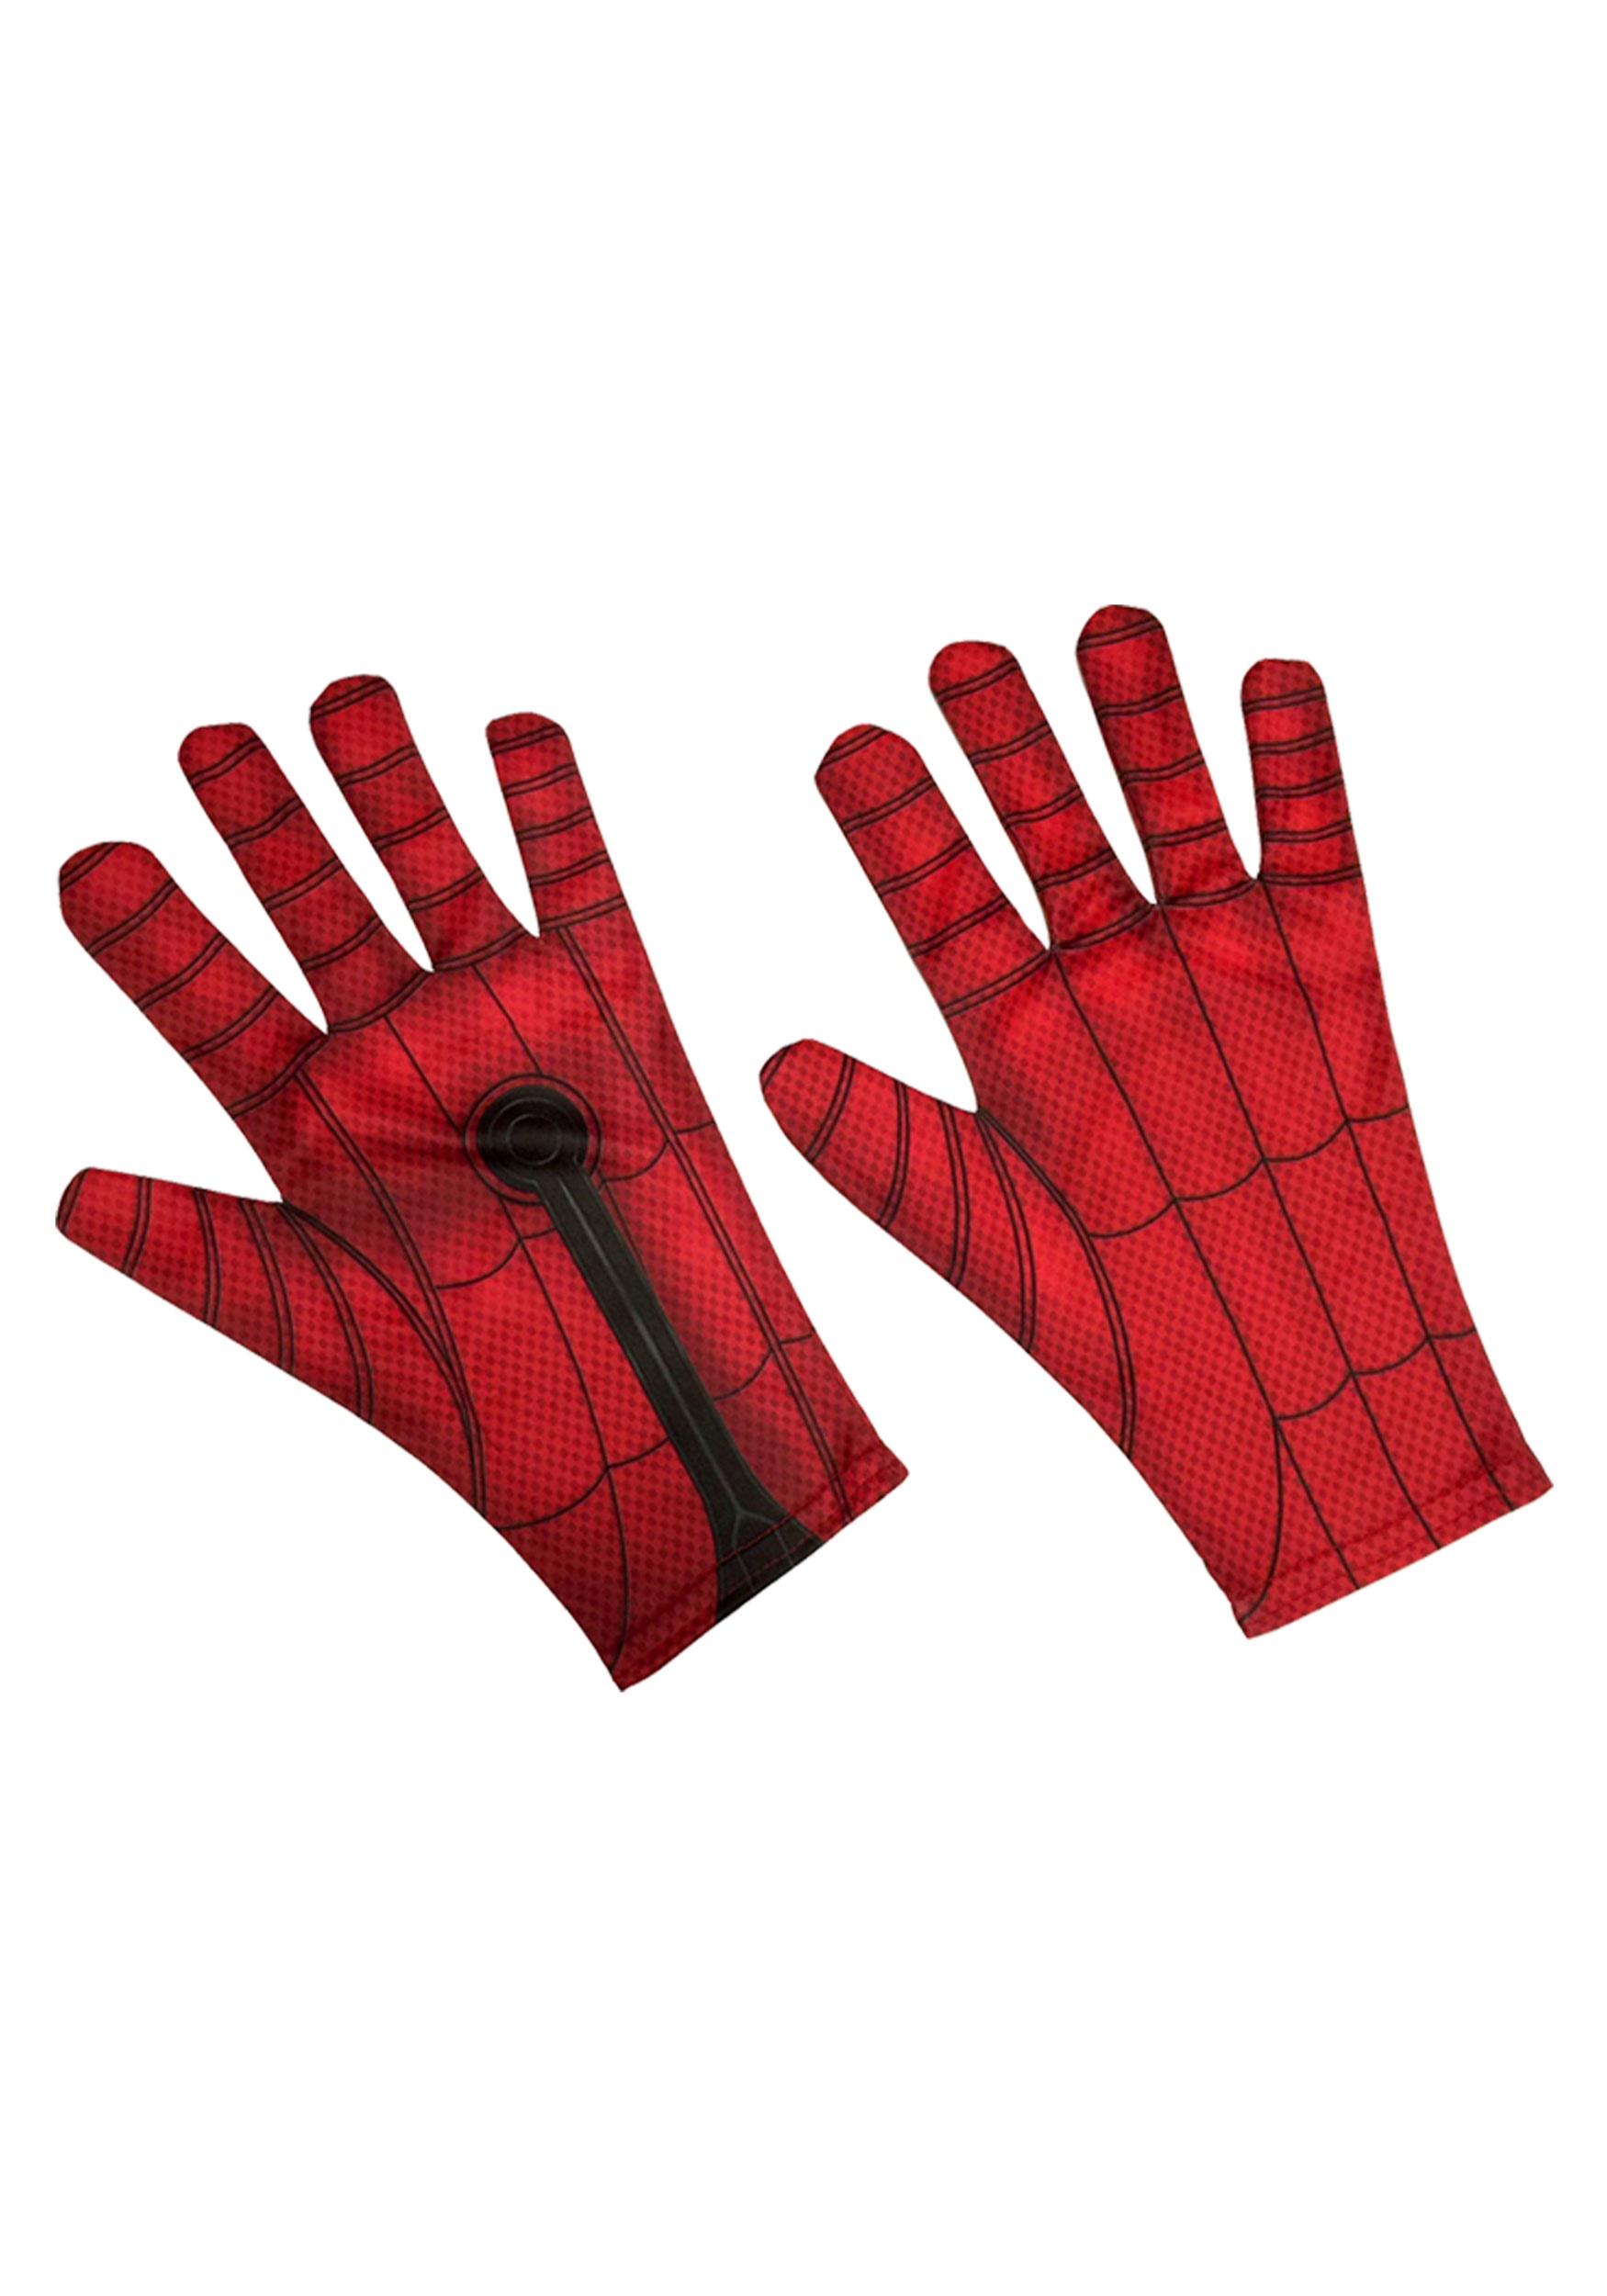 Adult Spiderman Gloves RU34487